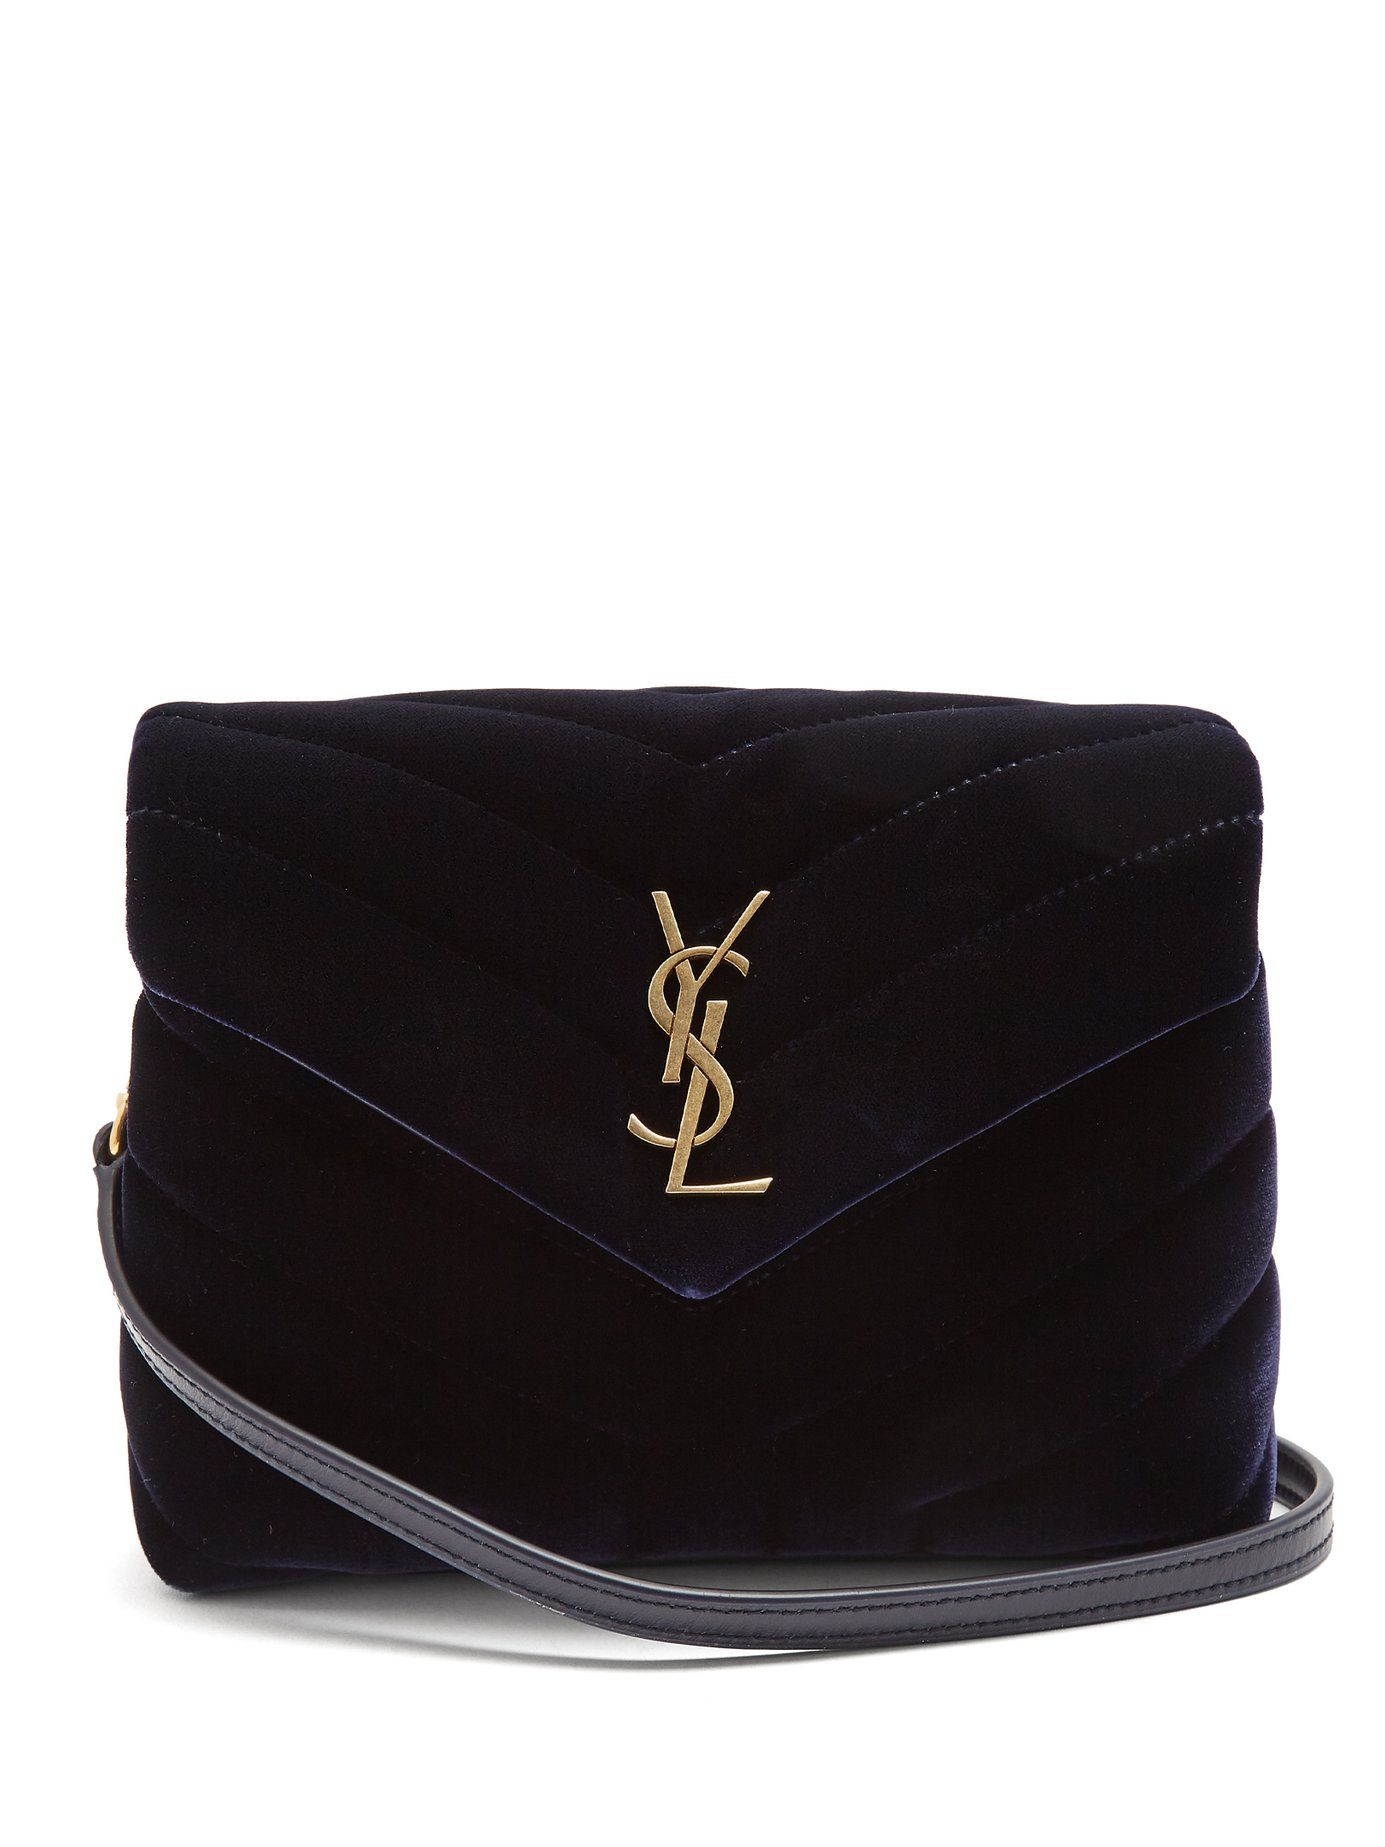 2407a9b2774c Click here to buy Saint Laurent Loulou Toy quilted-velvet cross-body bag at  MATCHESFASHION.COM